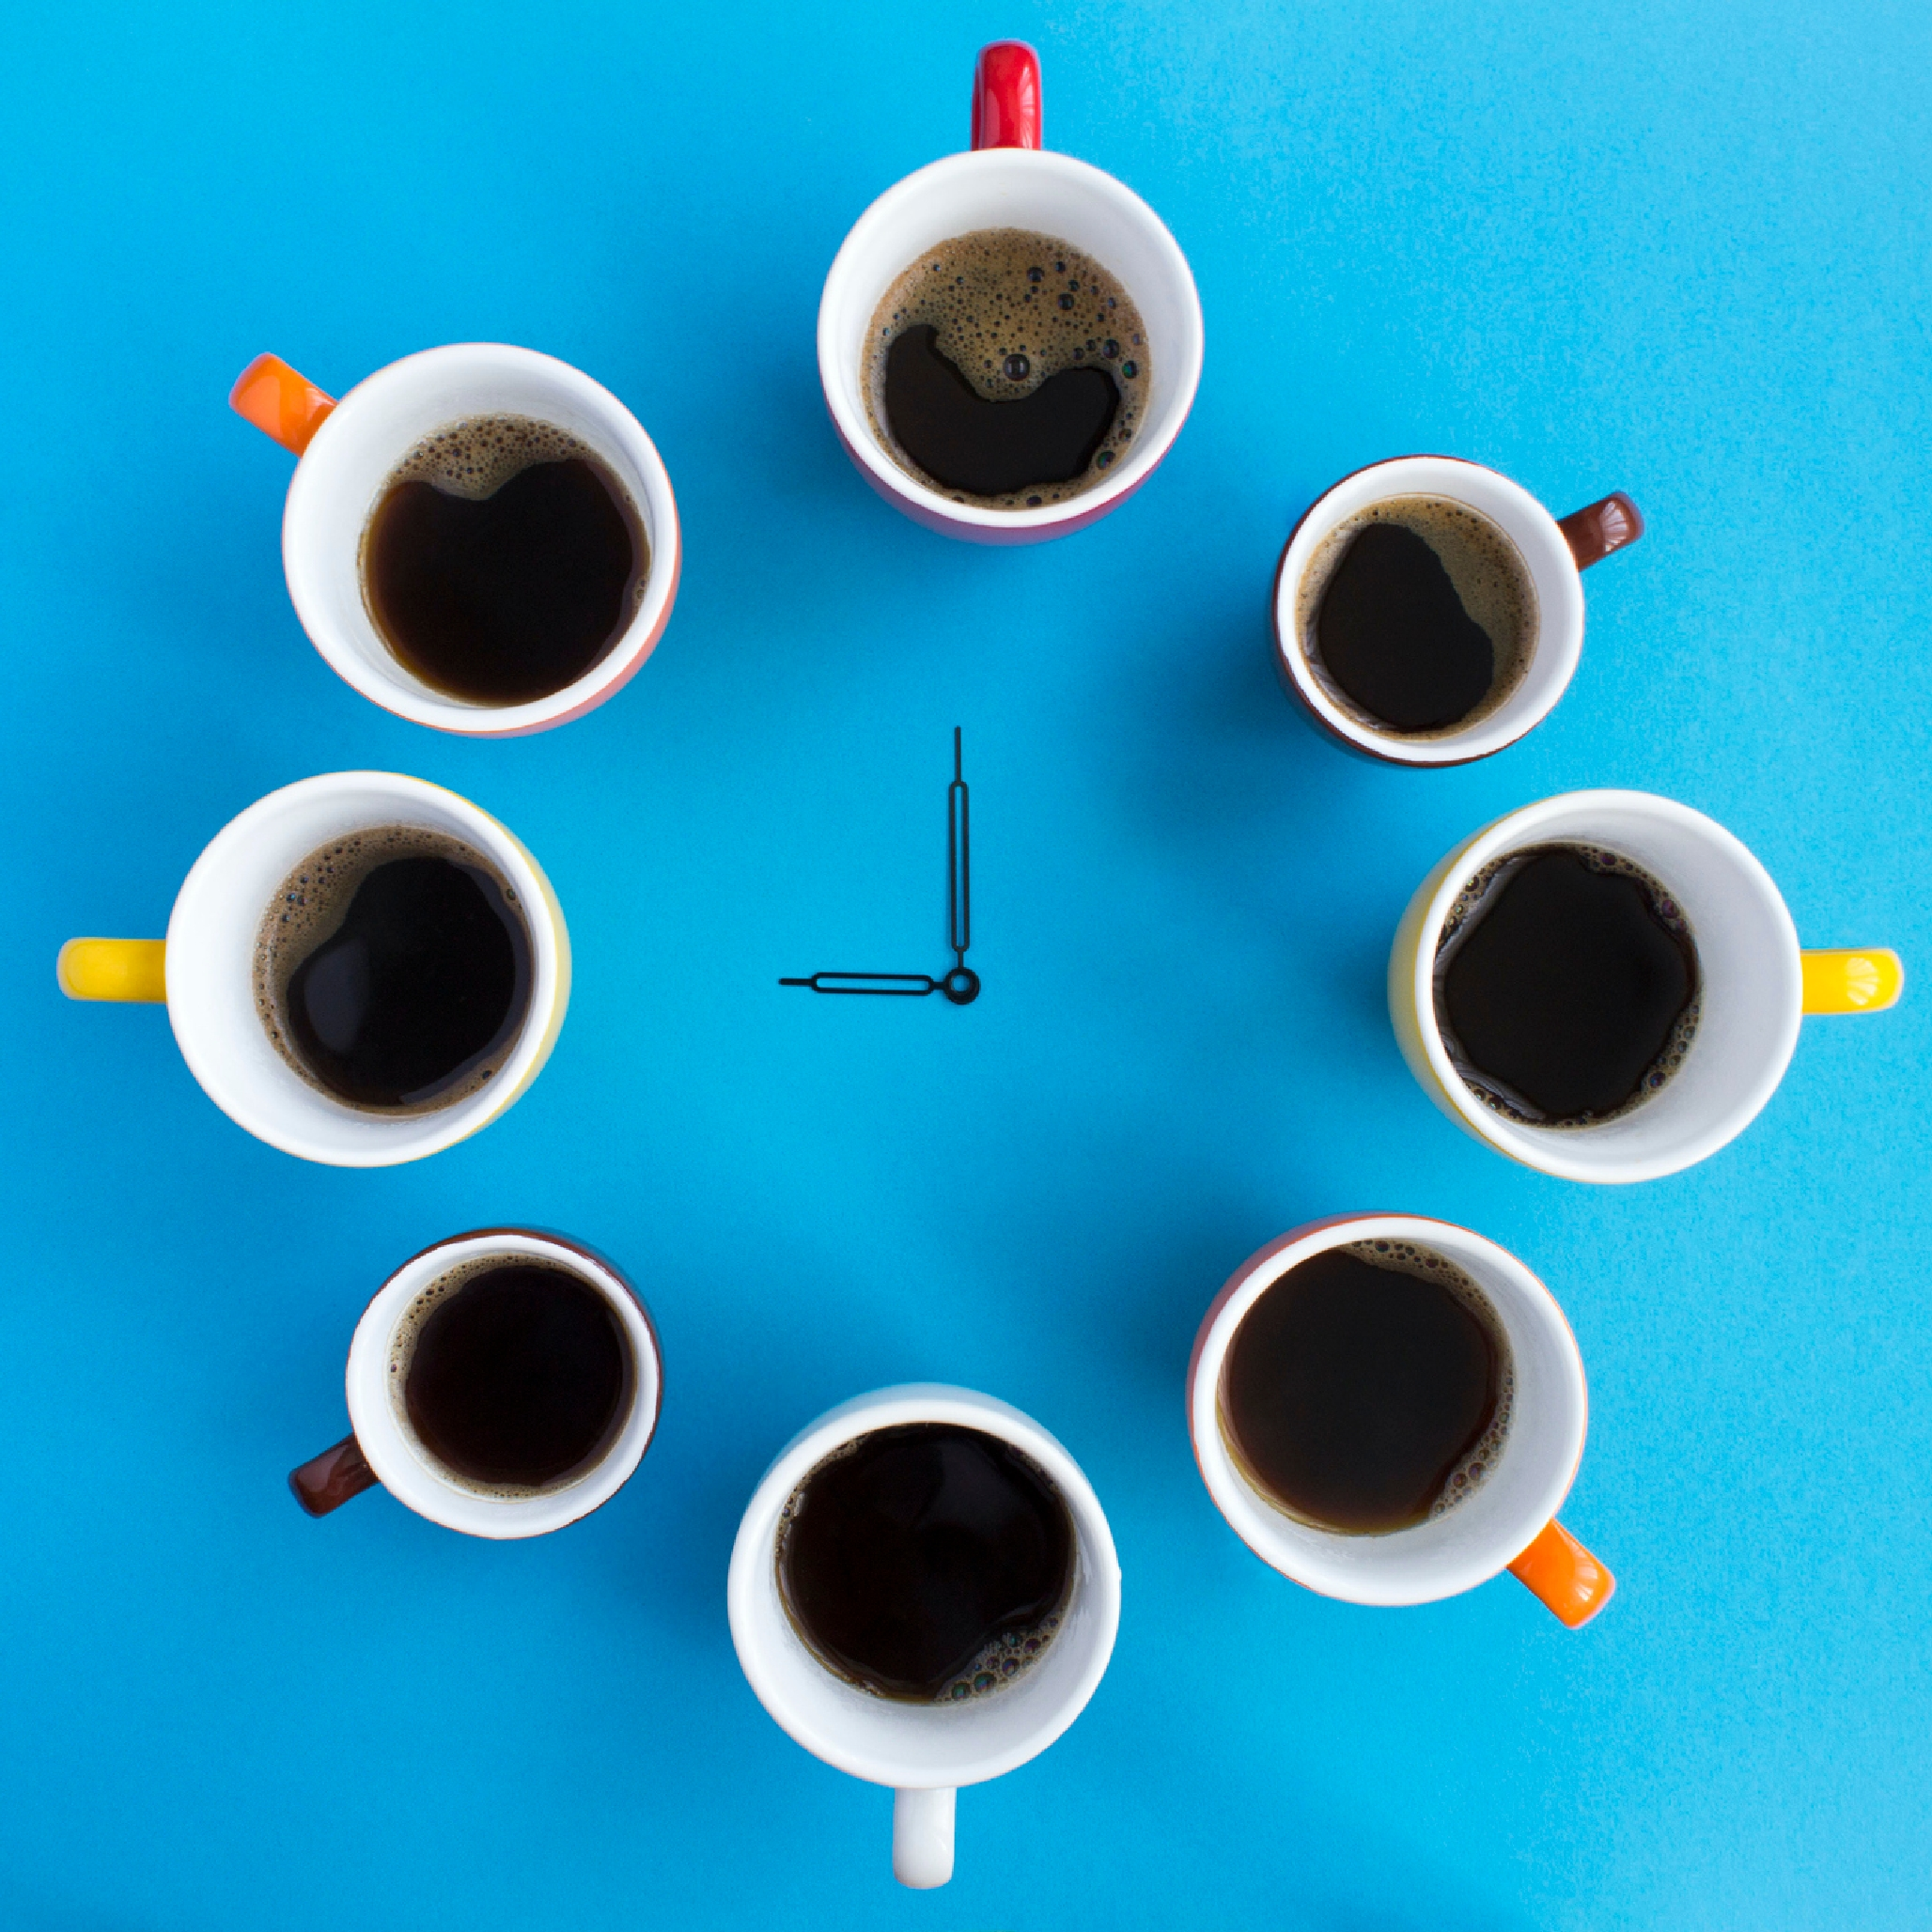 Photo of cups of coffee forming a clock